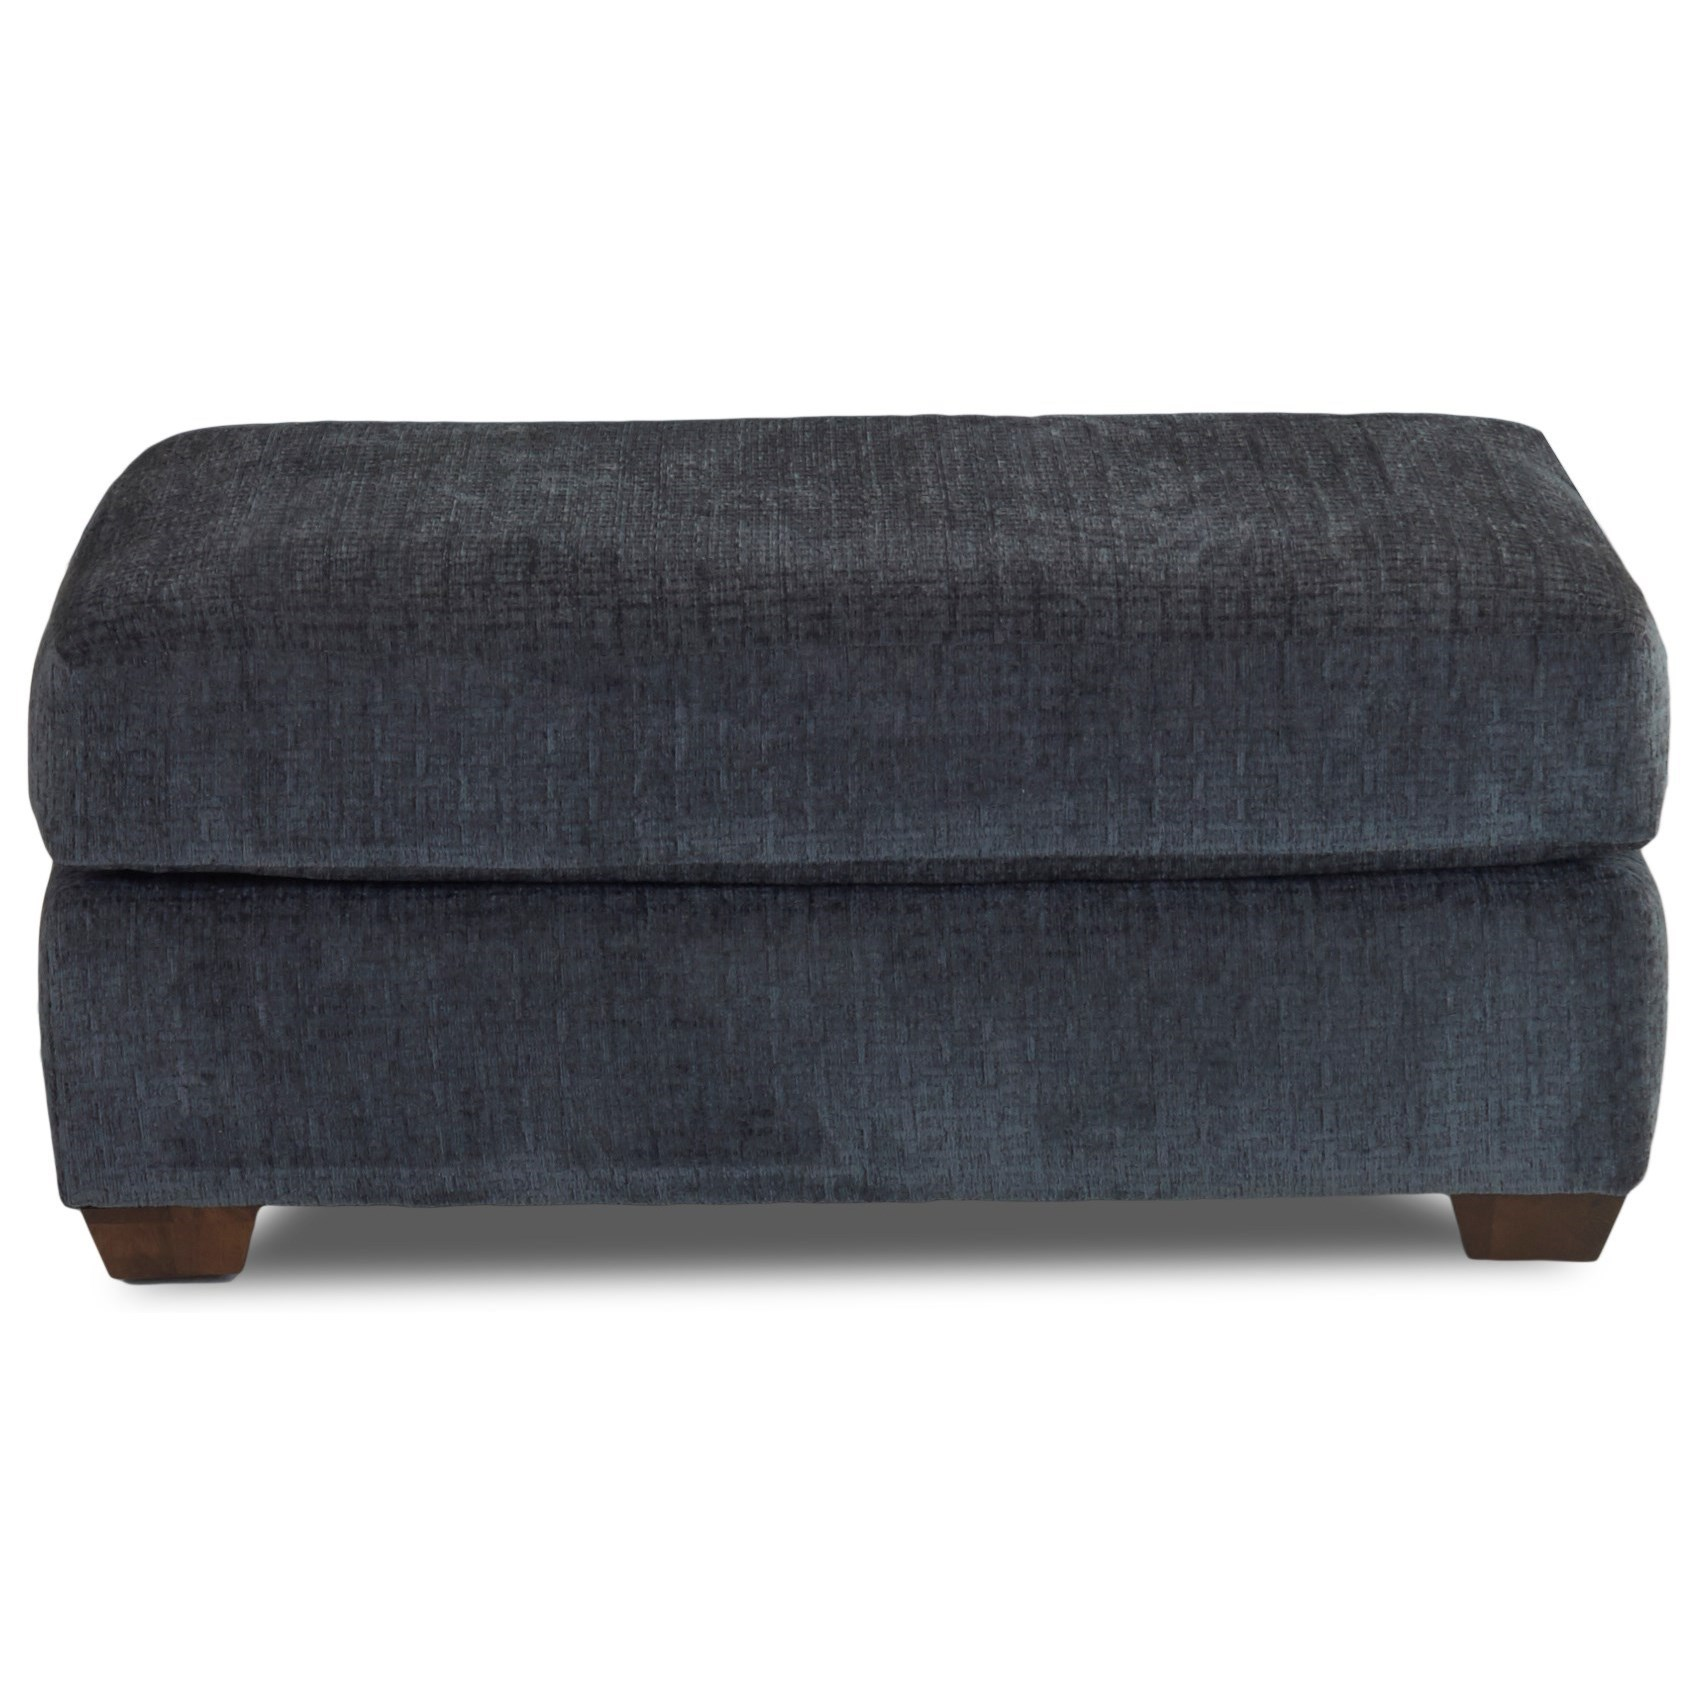 Otto Sale Sofa Pinecrest Pinecrest Oversized Ottoman By Klaussner At Lapeer Furniture Mattress Center